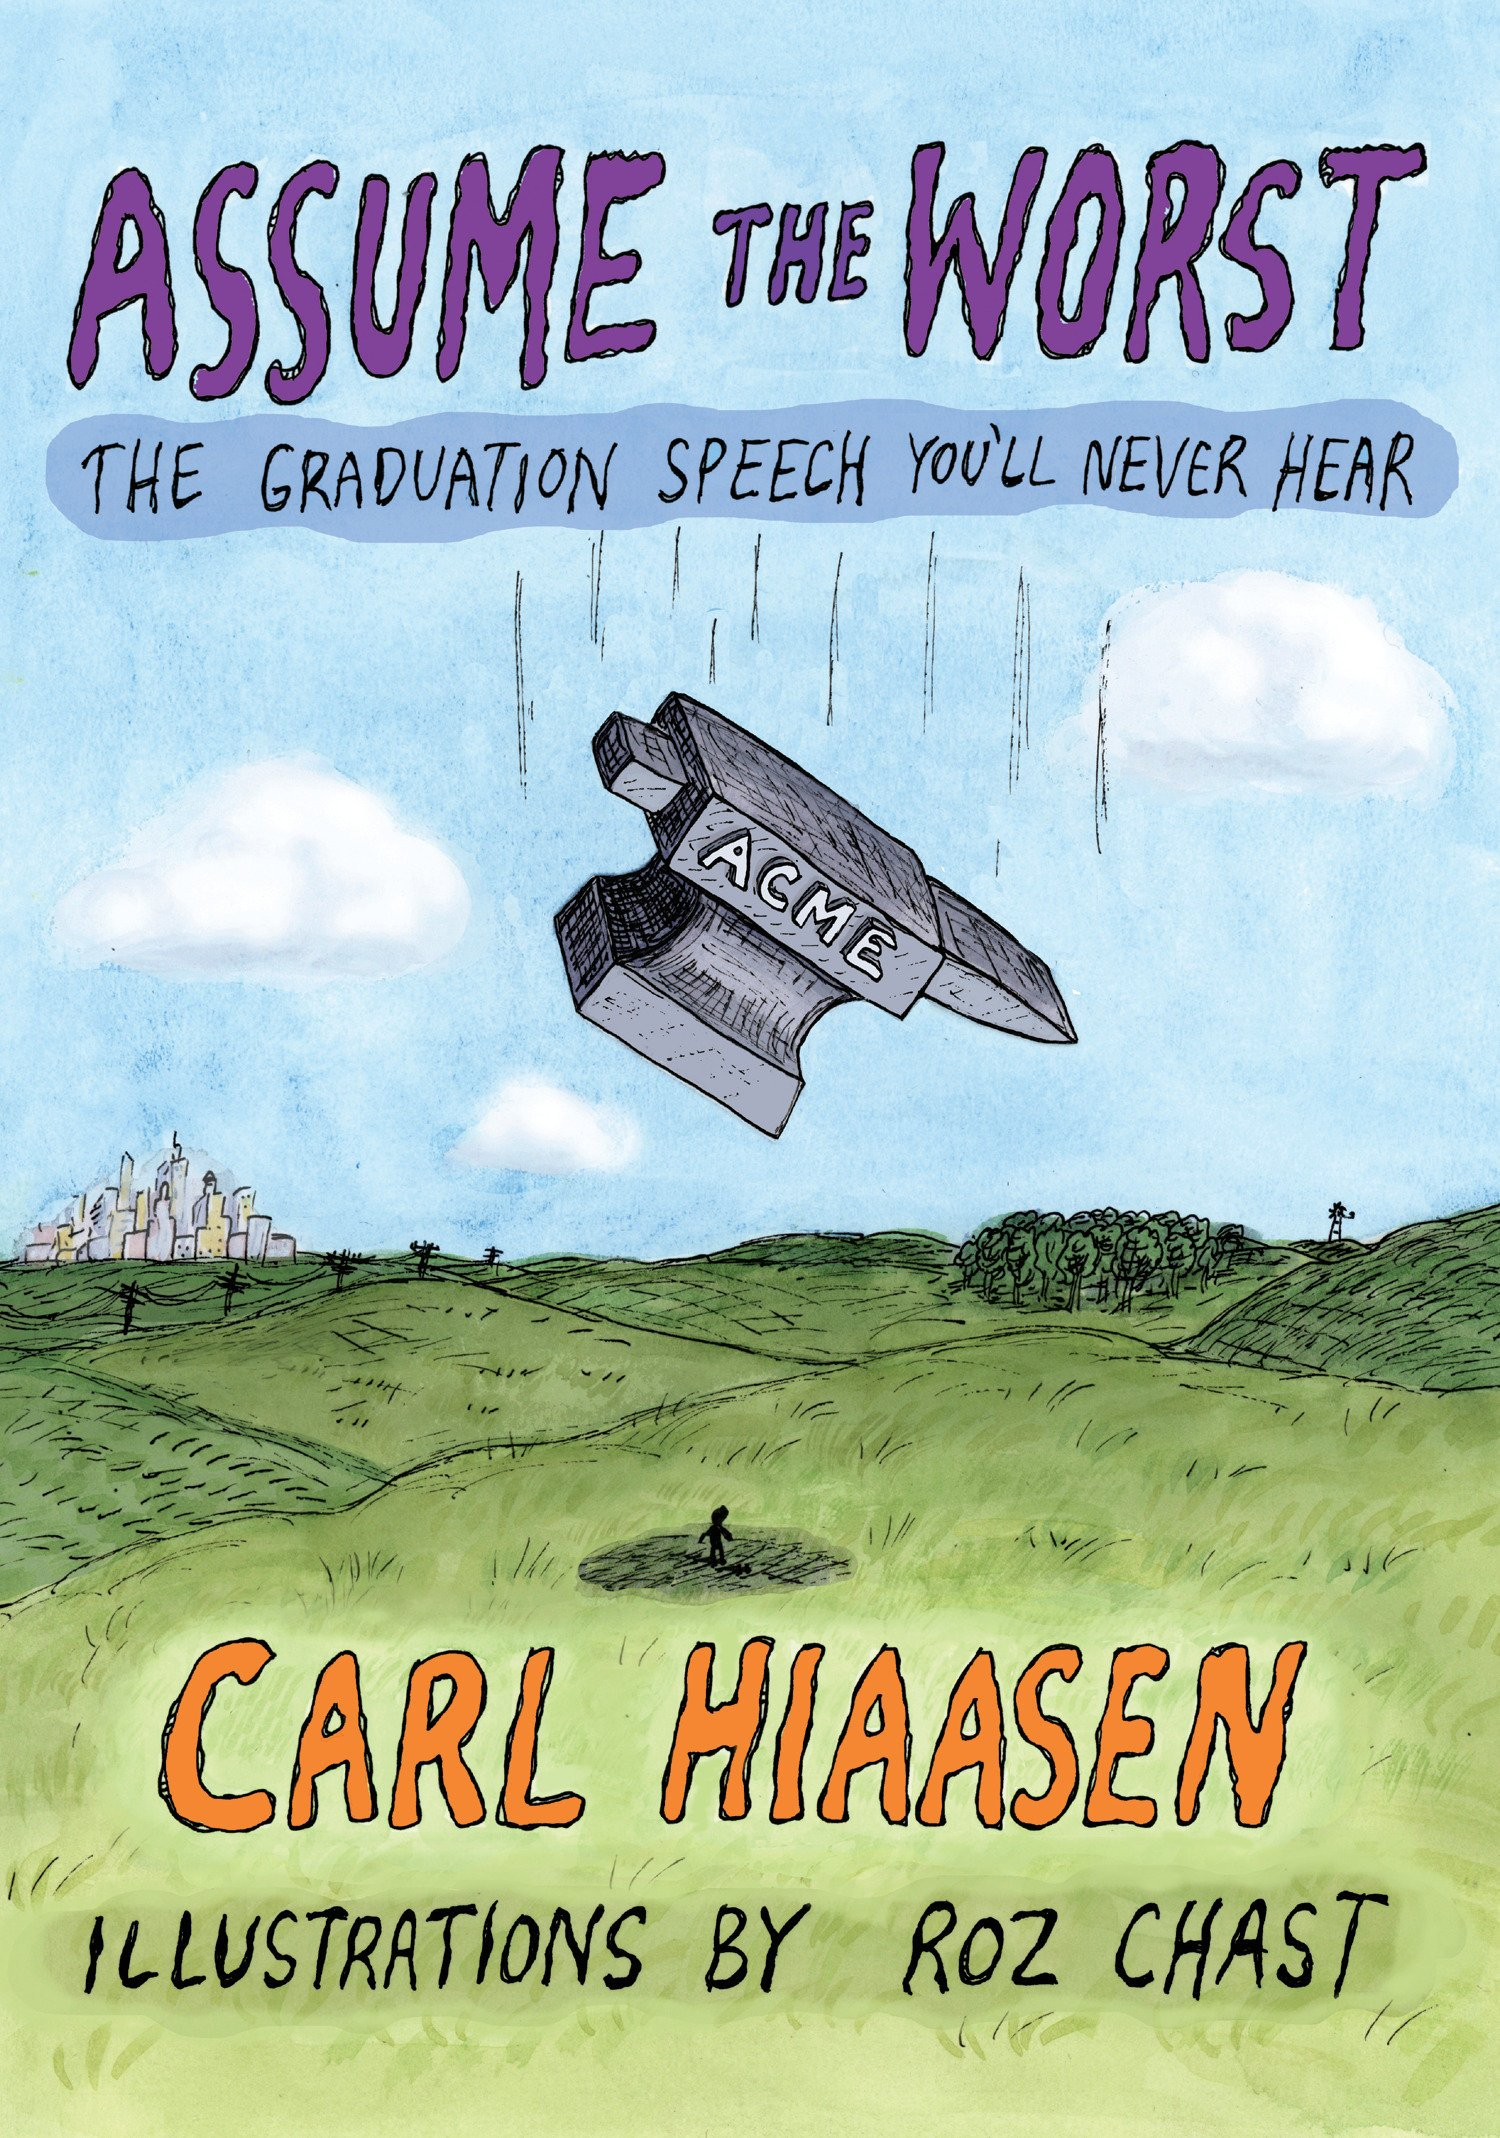 'Assume the Worst: The Graduation Speech You'll Never Hear' by Carl Hiaasen